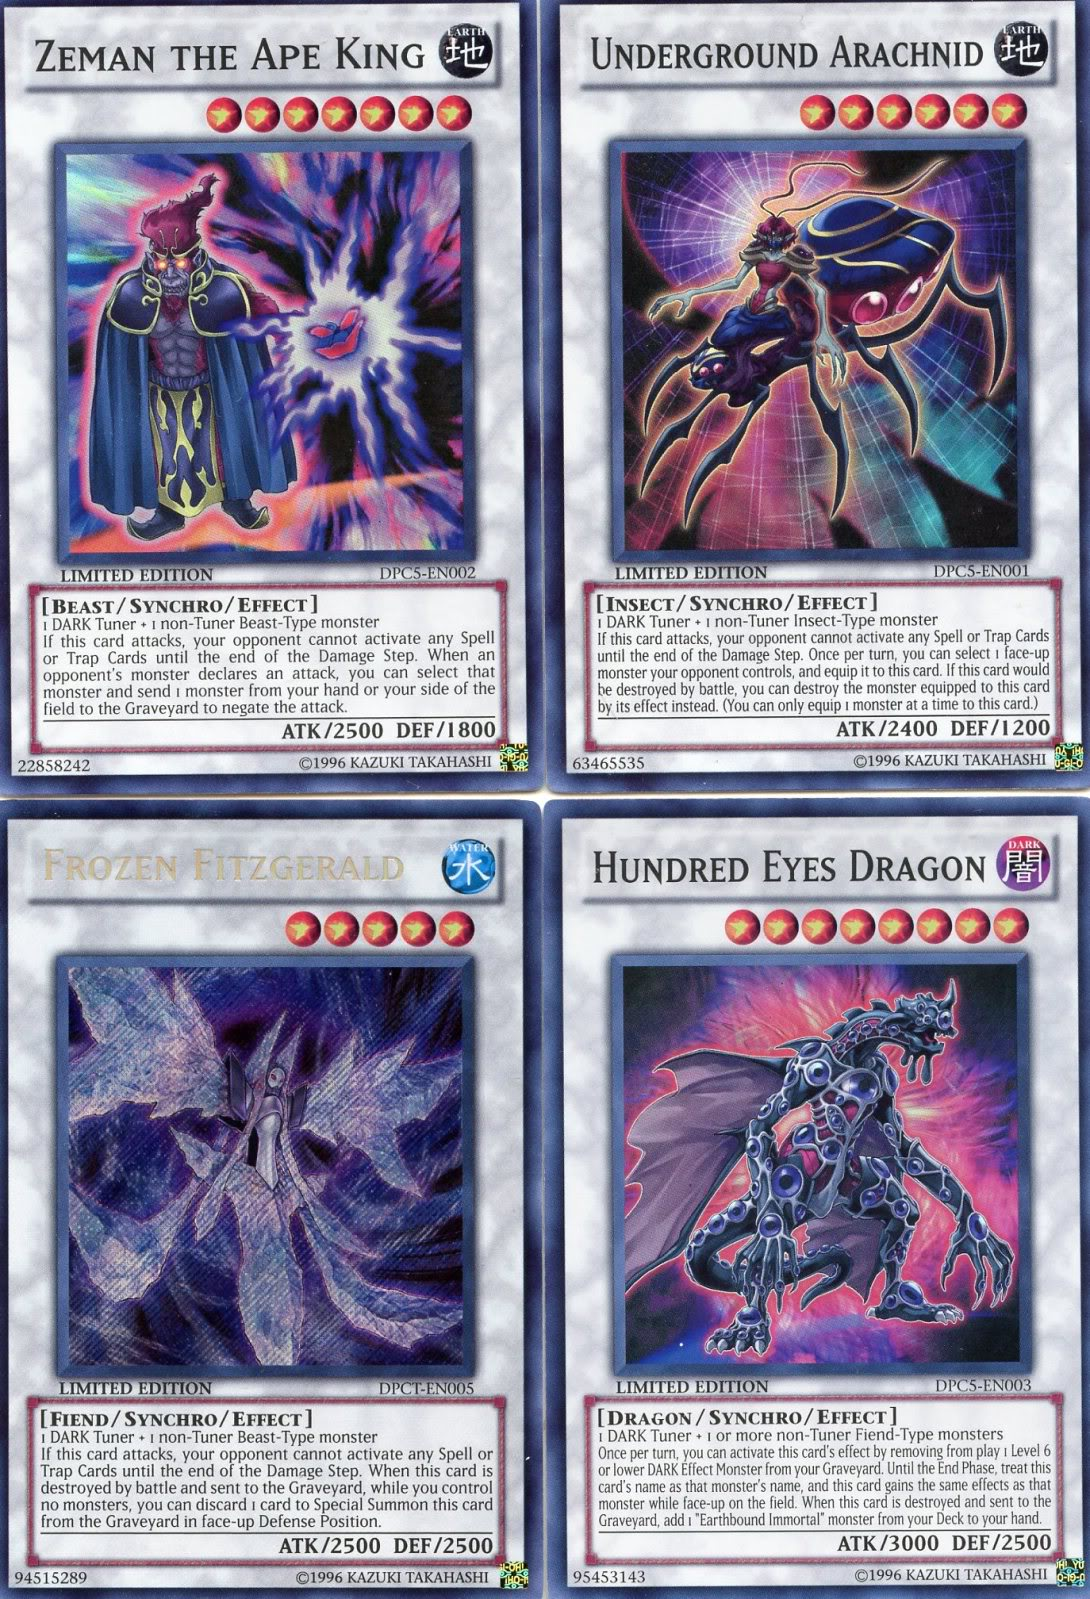 Hundred Eyes Dragon, Zeman Ape King, Underground Arachnid & Frozen Fitzgerald